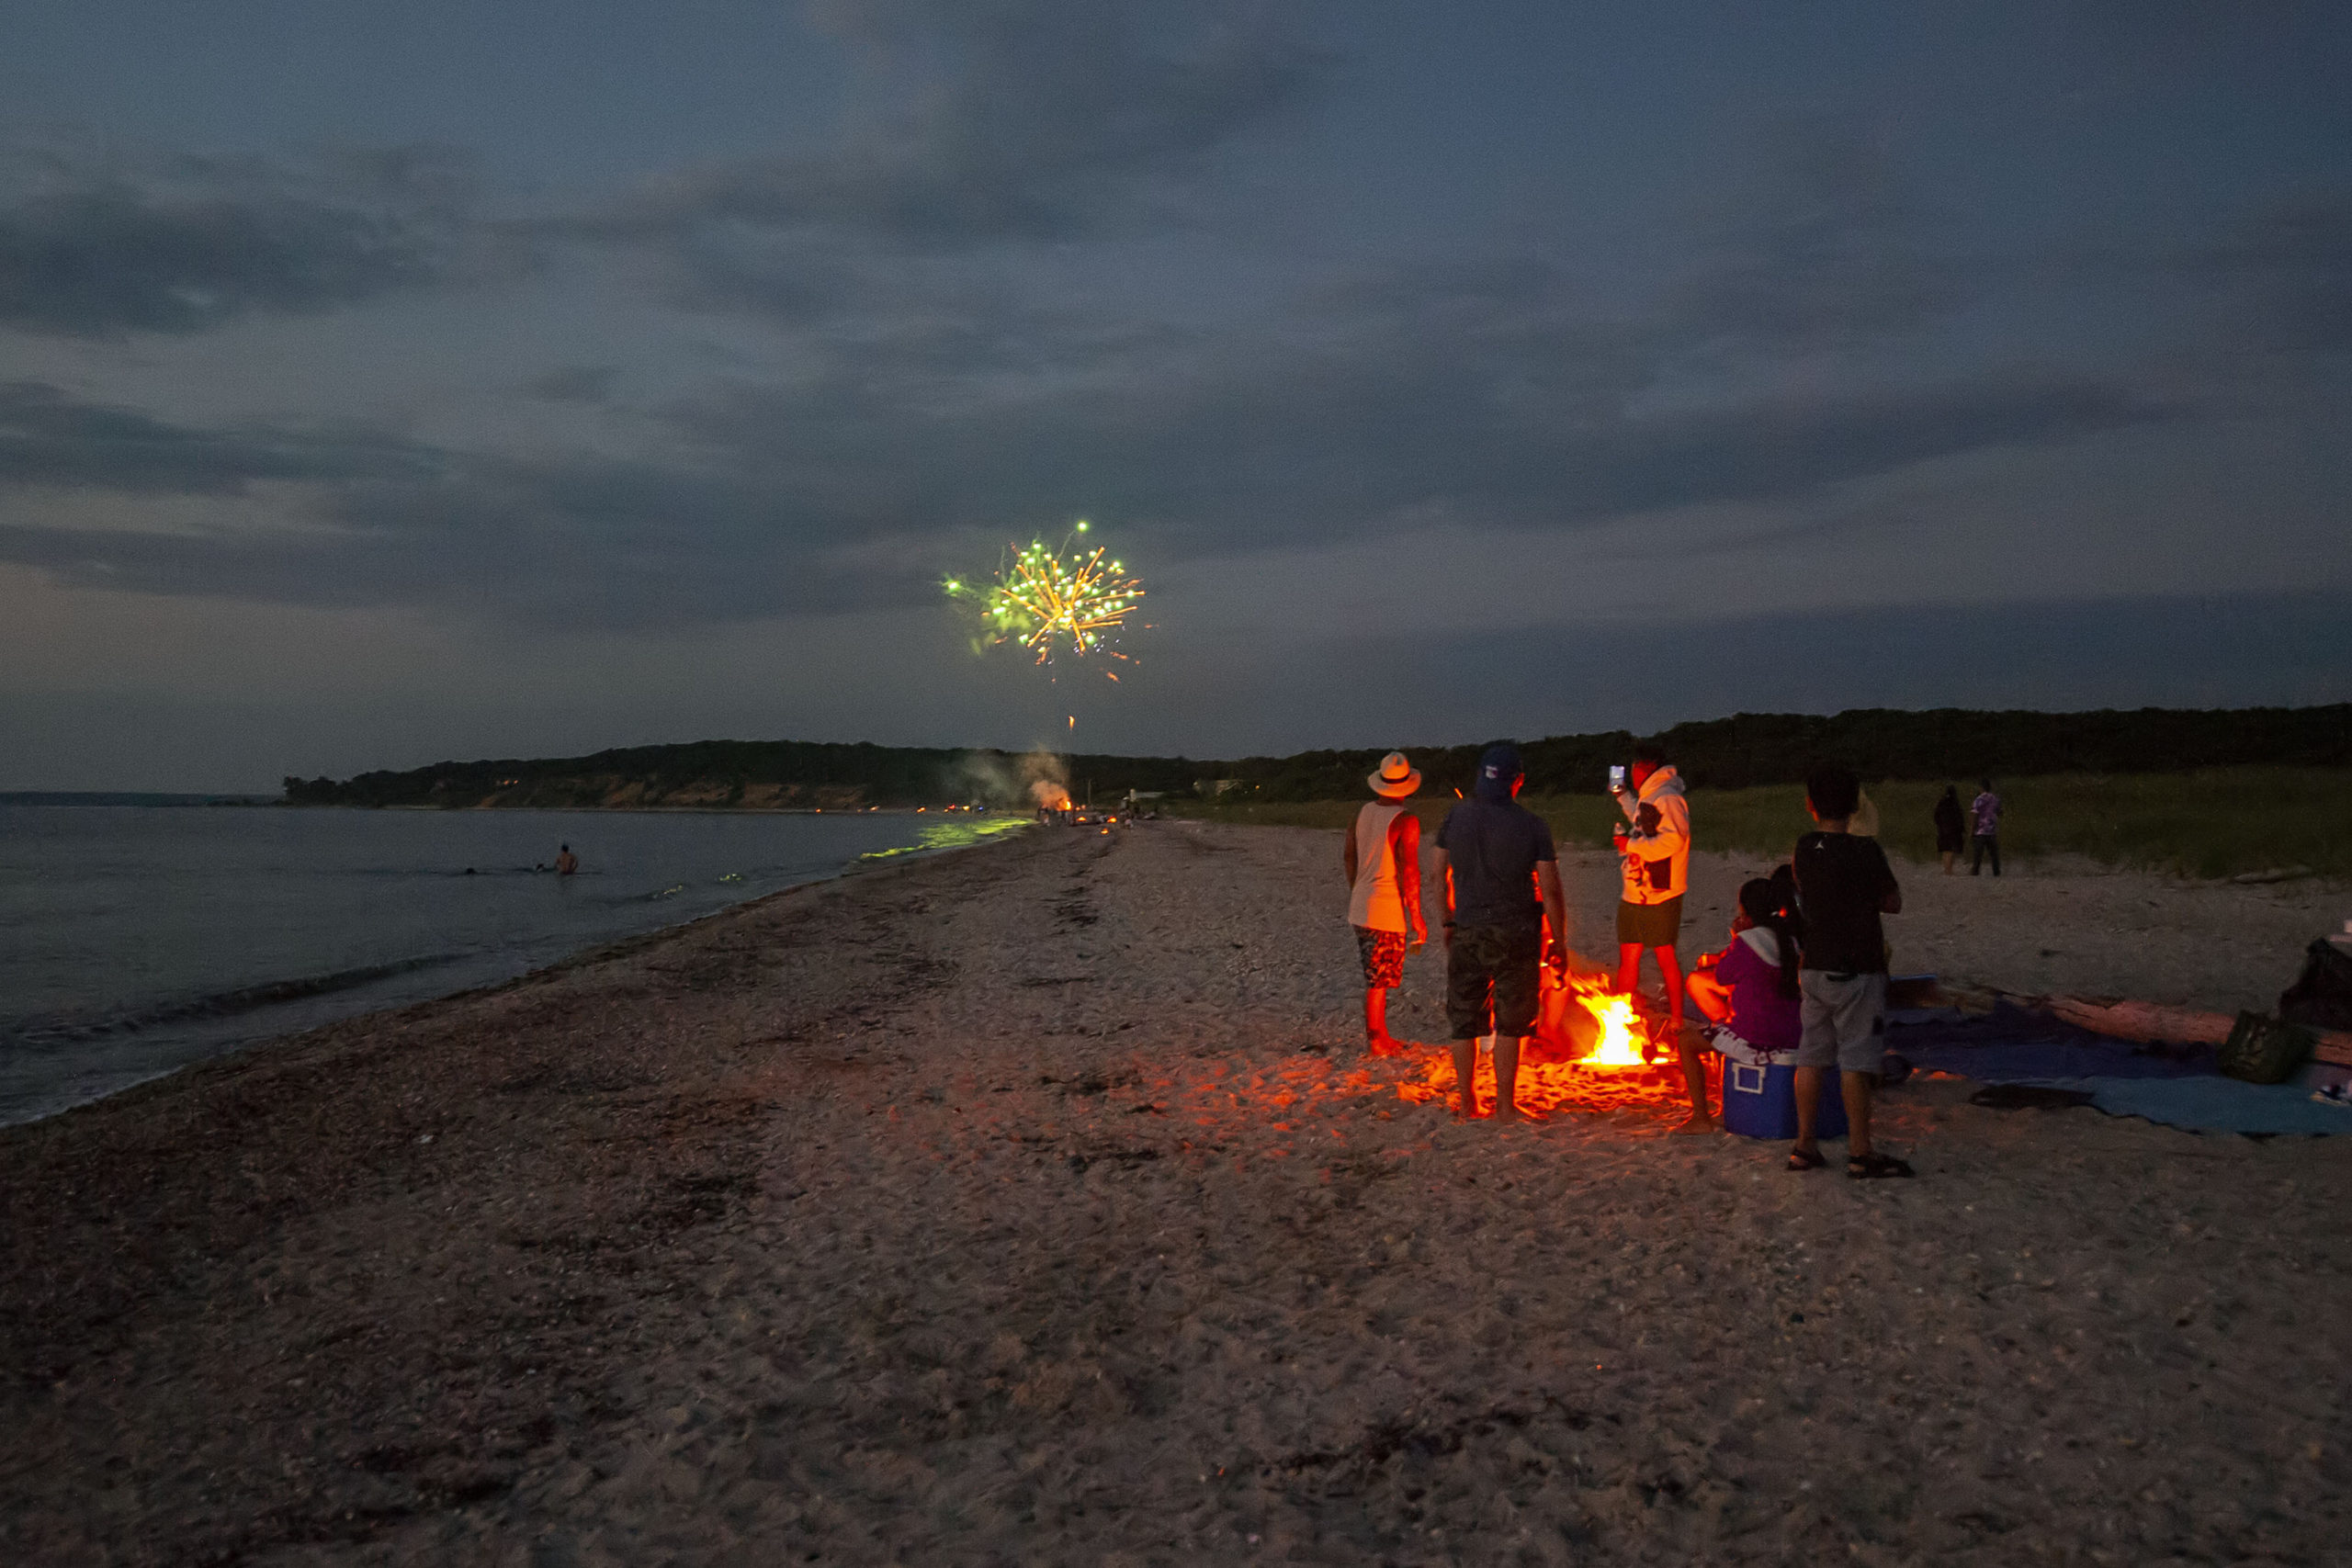 A family watches from around their campfire as another party sets off their own fireworks on the beach as part of a July 4th celebration as the sun goes down at Maidstone Park Beach on Saturday evening.    MICHAEL HELLER